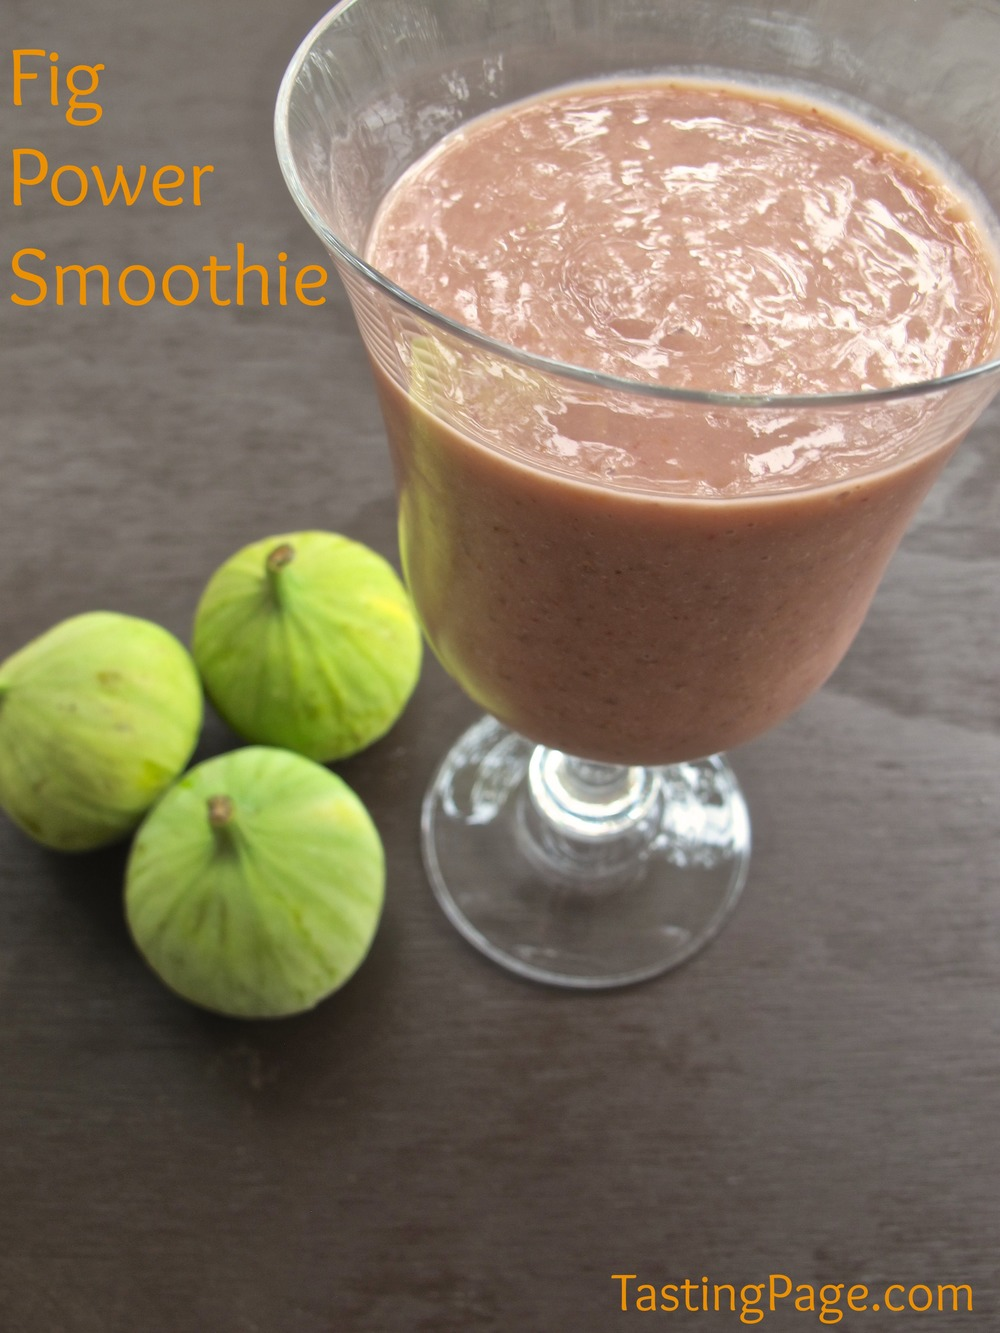 fig power smoothie